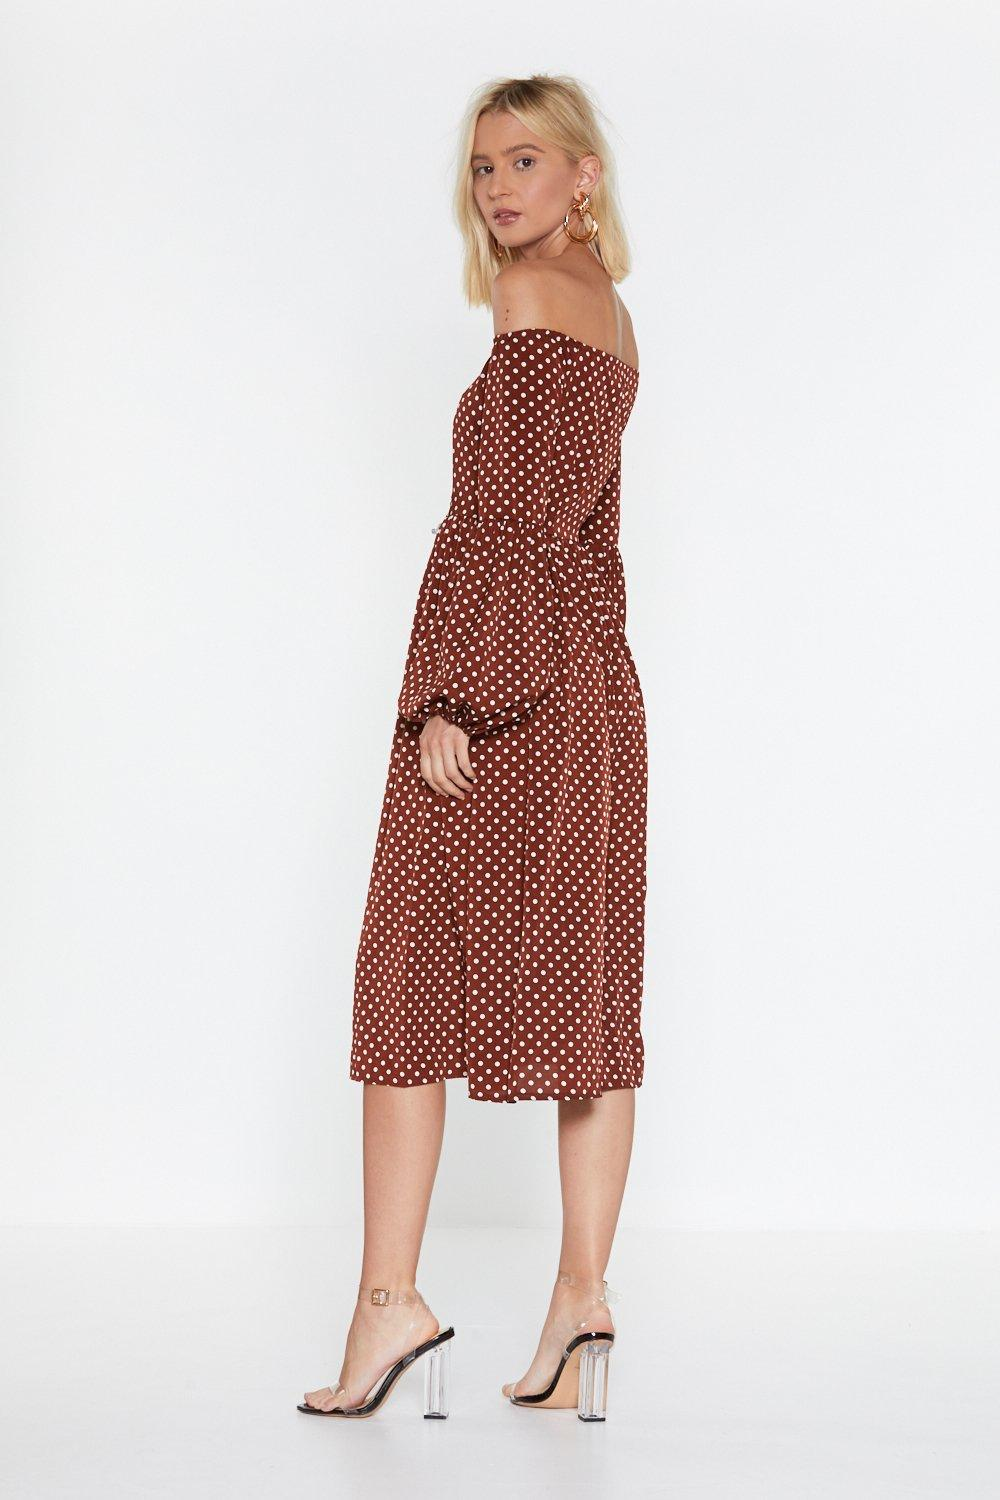 5338f3d2f3429 Swing In Our Direction Polka Dot Dress. Hover to zoom